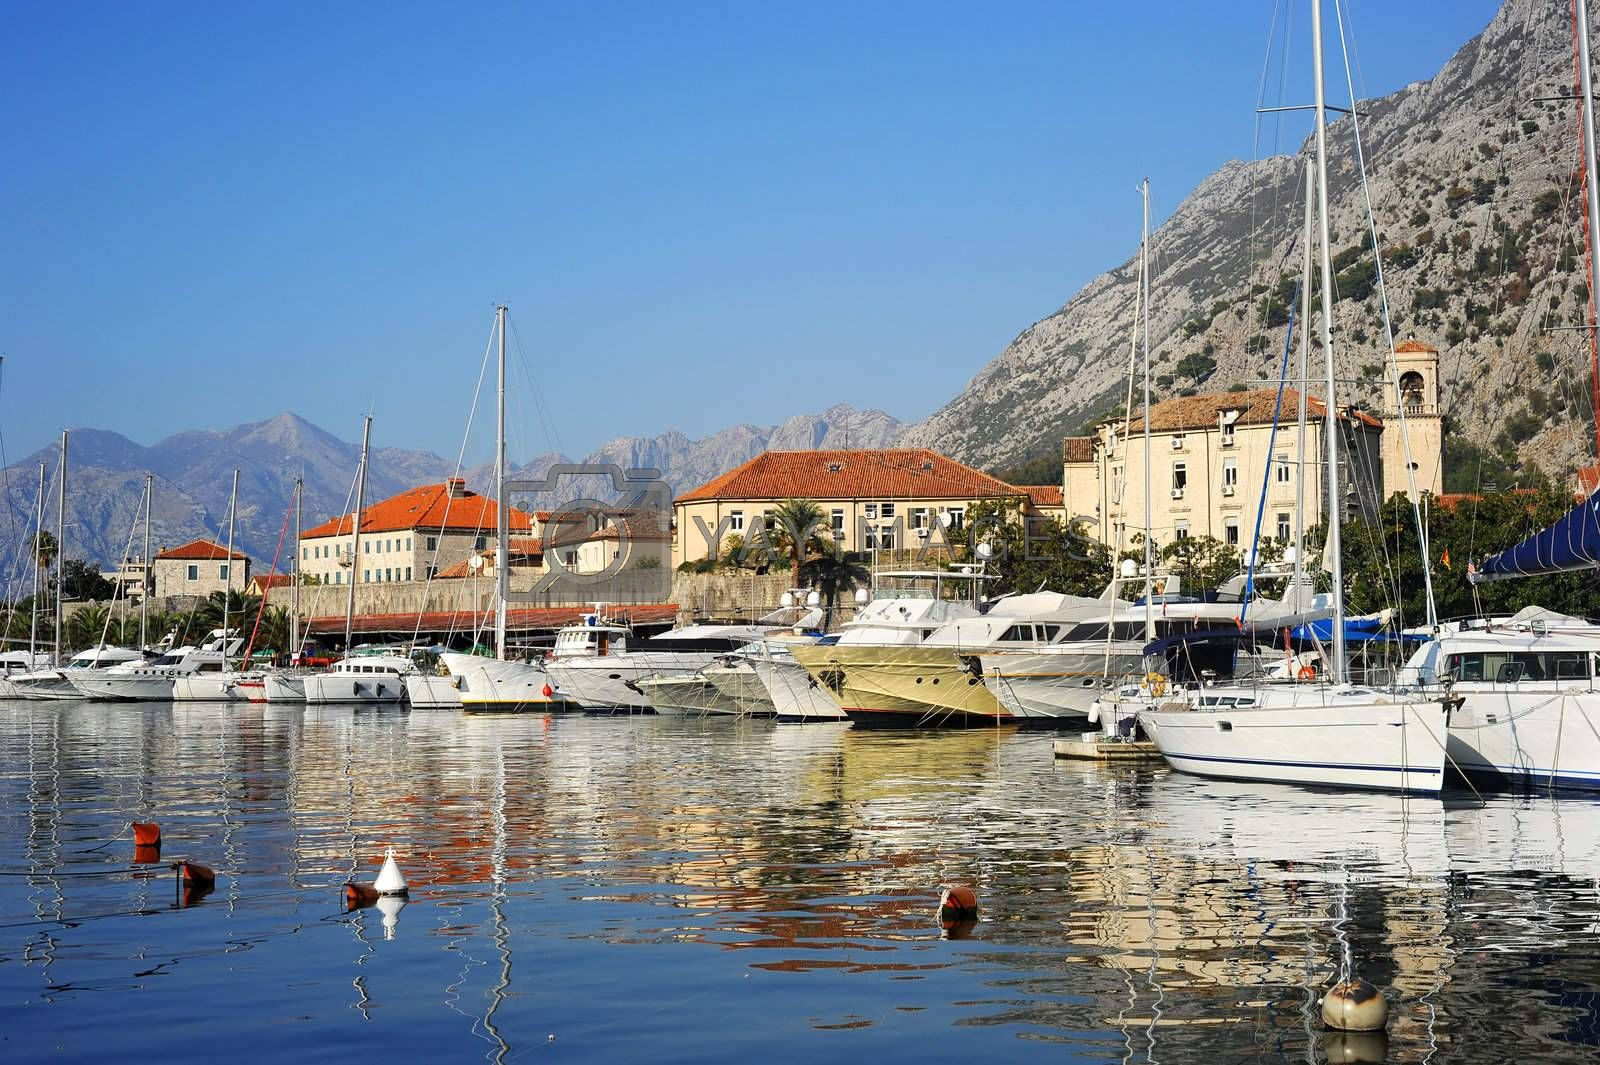 A lot of yachts in Kotor harbor, Montenegro